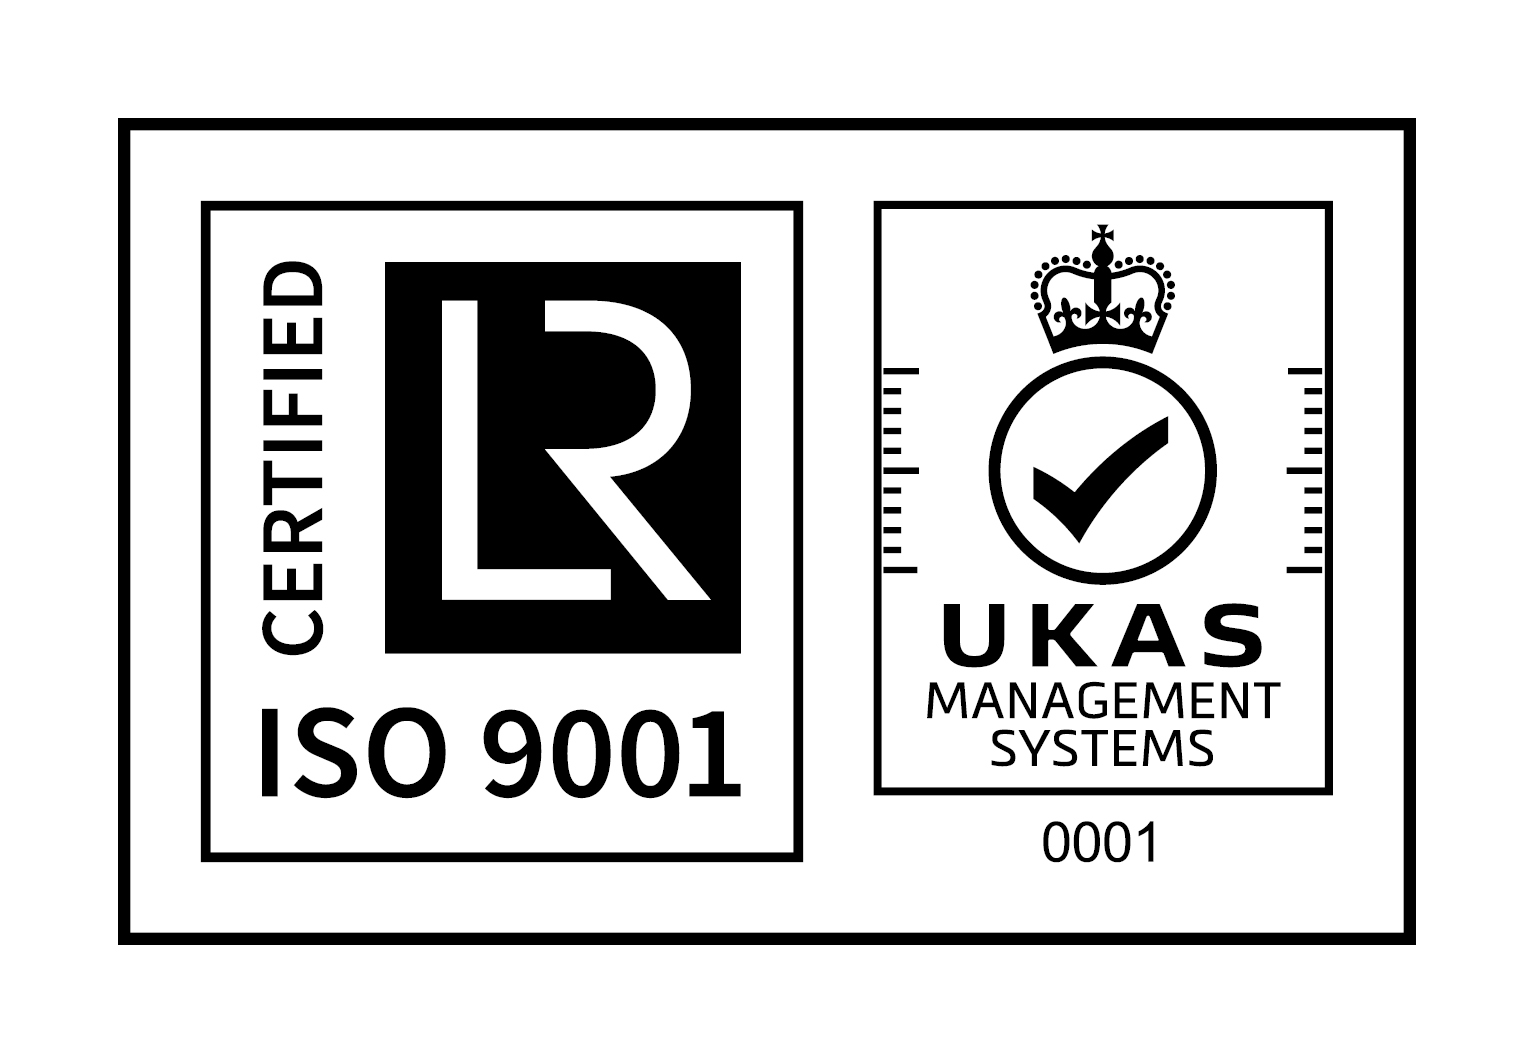 UKAS AND ISO 9001